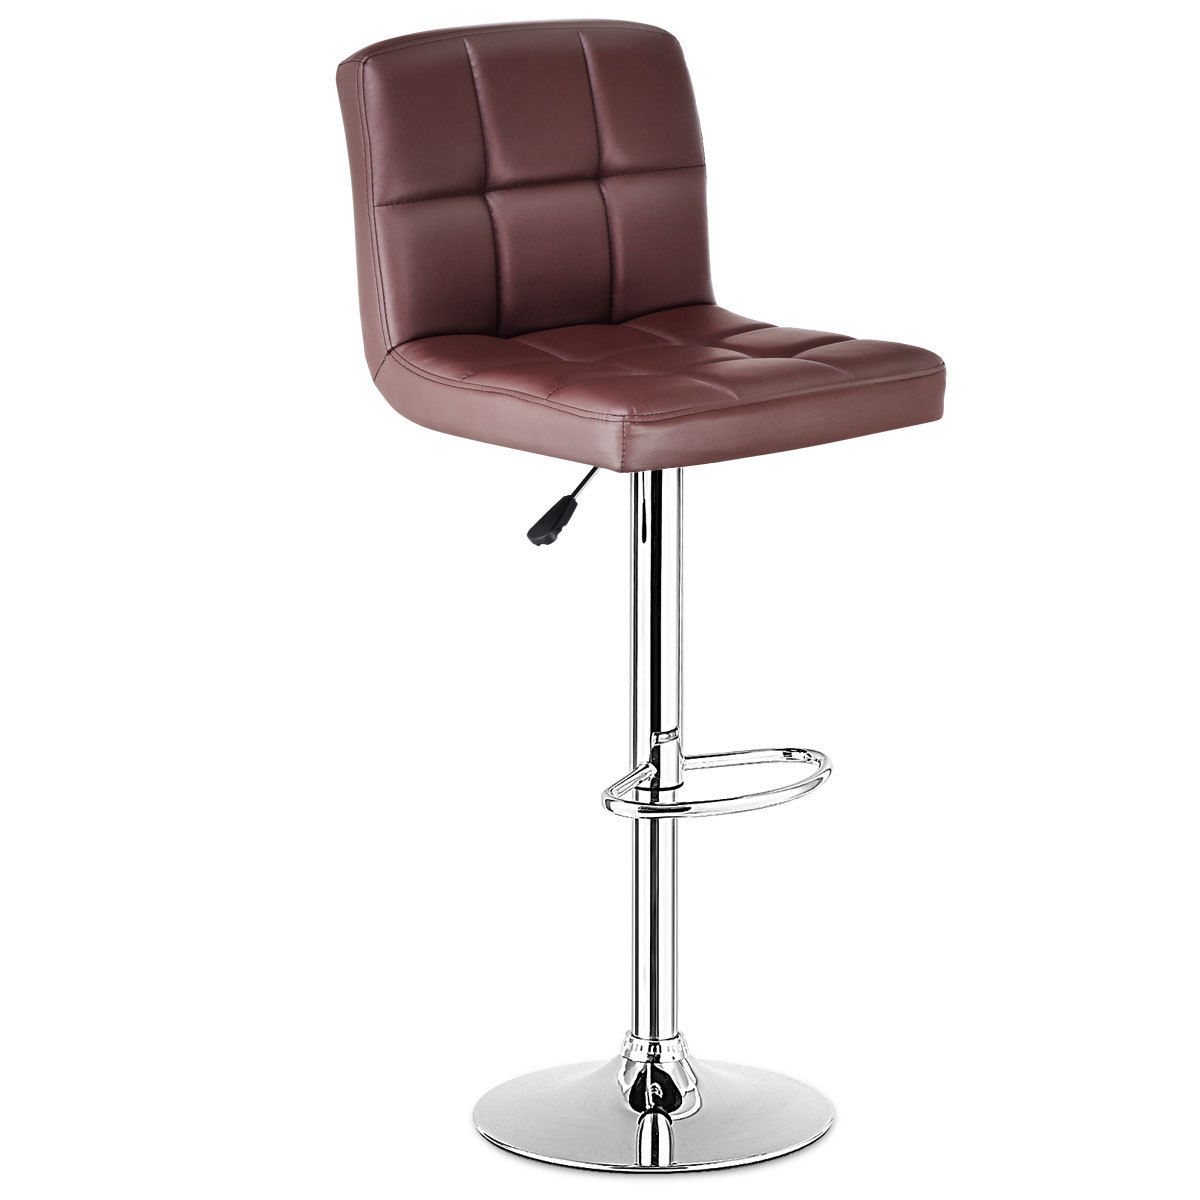 Bar Stool Chairs Costway Set Of 2 Bar Stools Pu Leather Adjustable Barstool Swivel Pub Chairs Brown